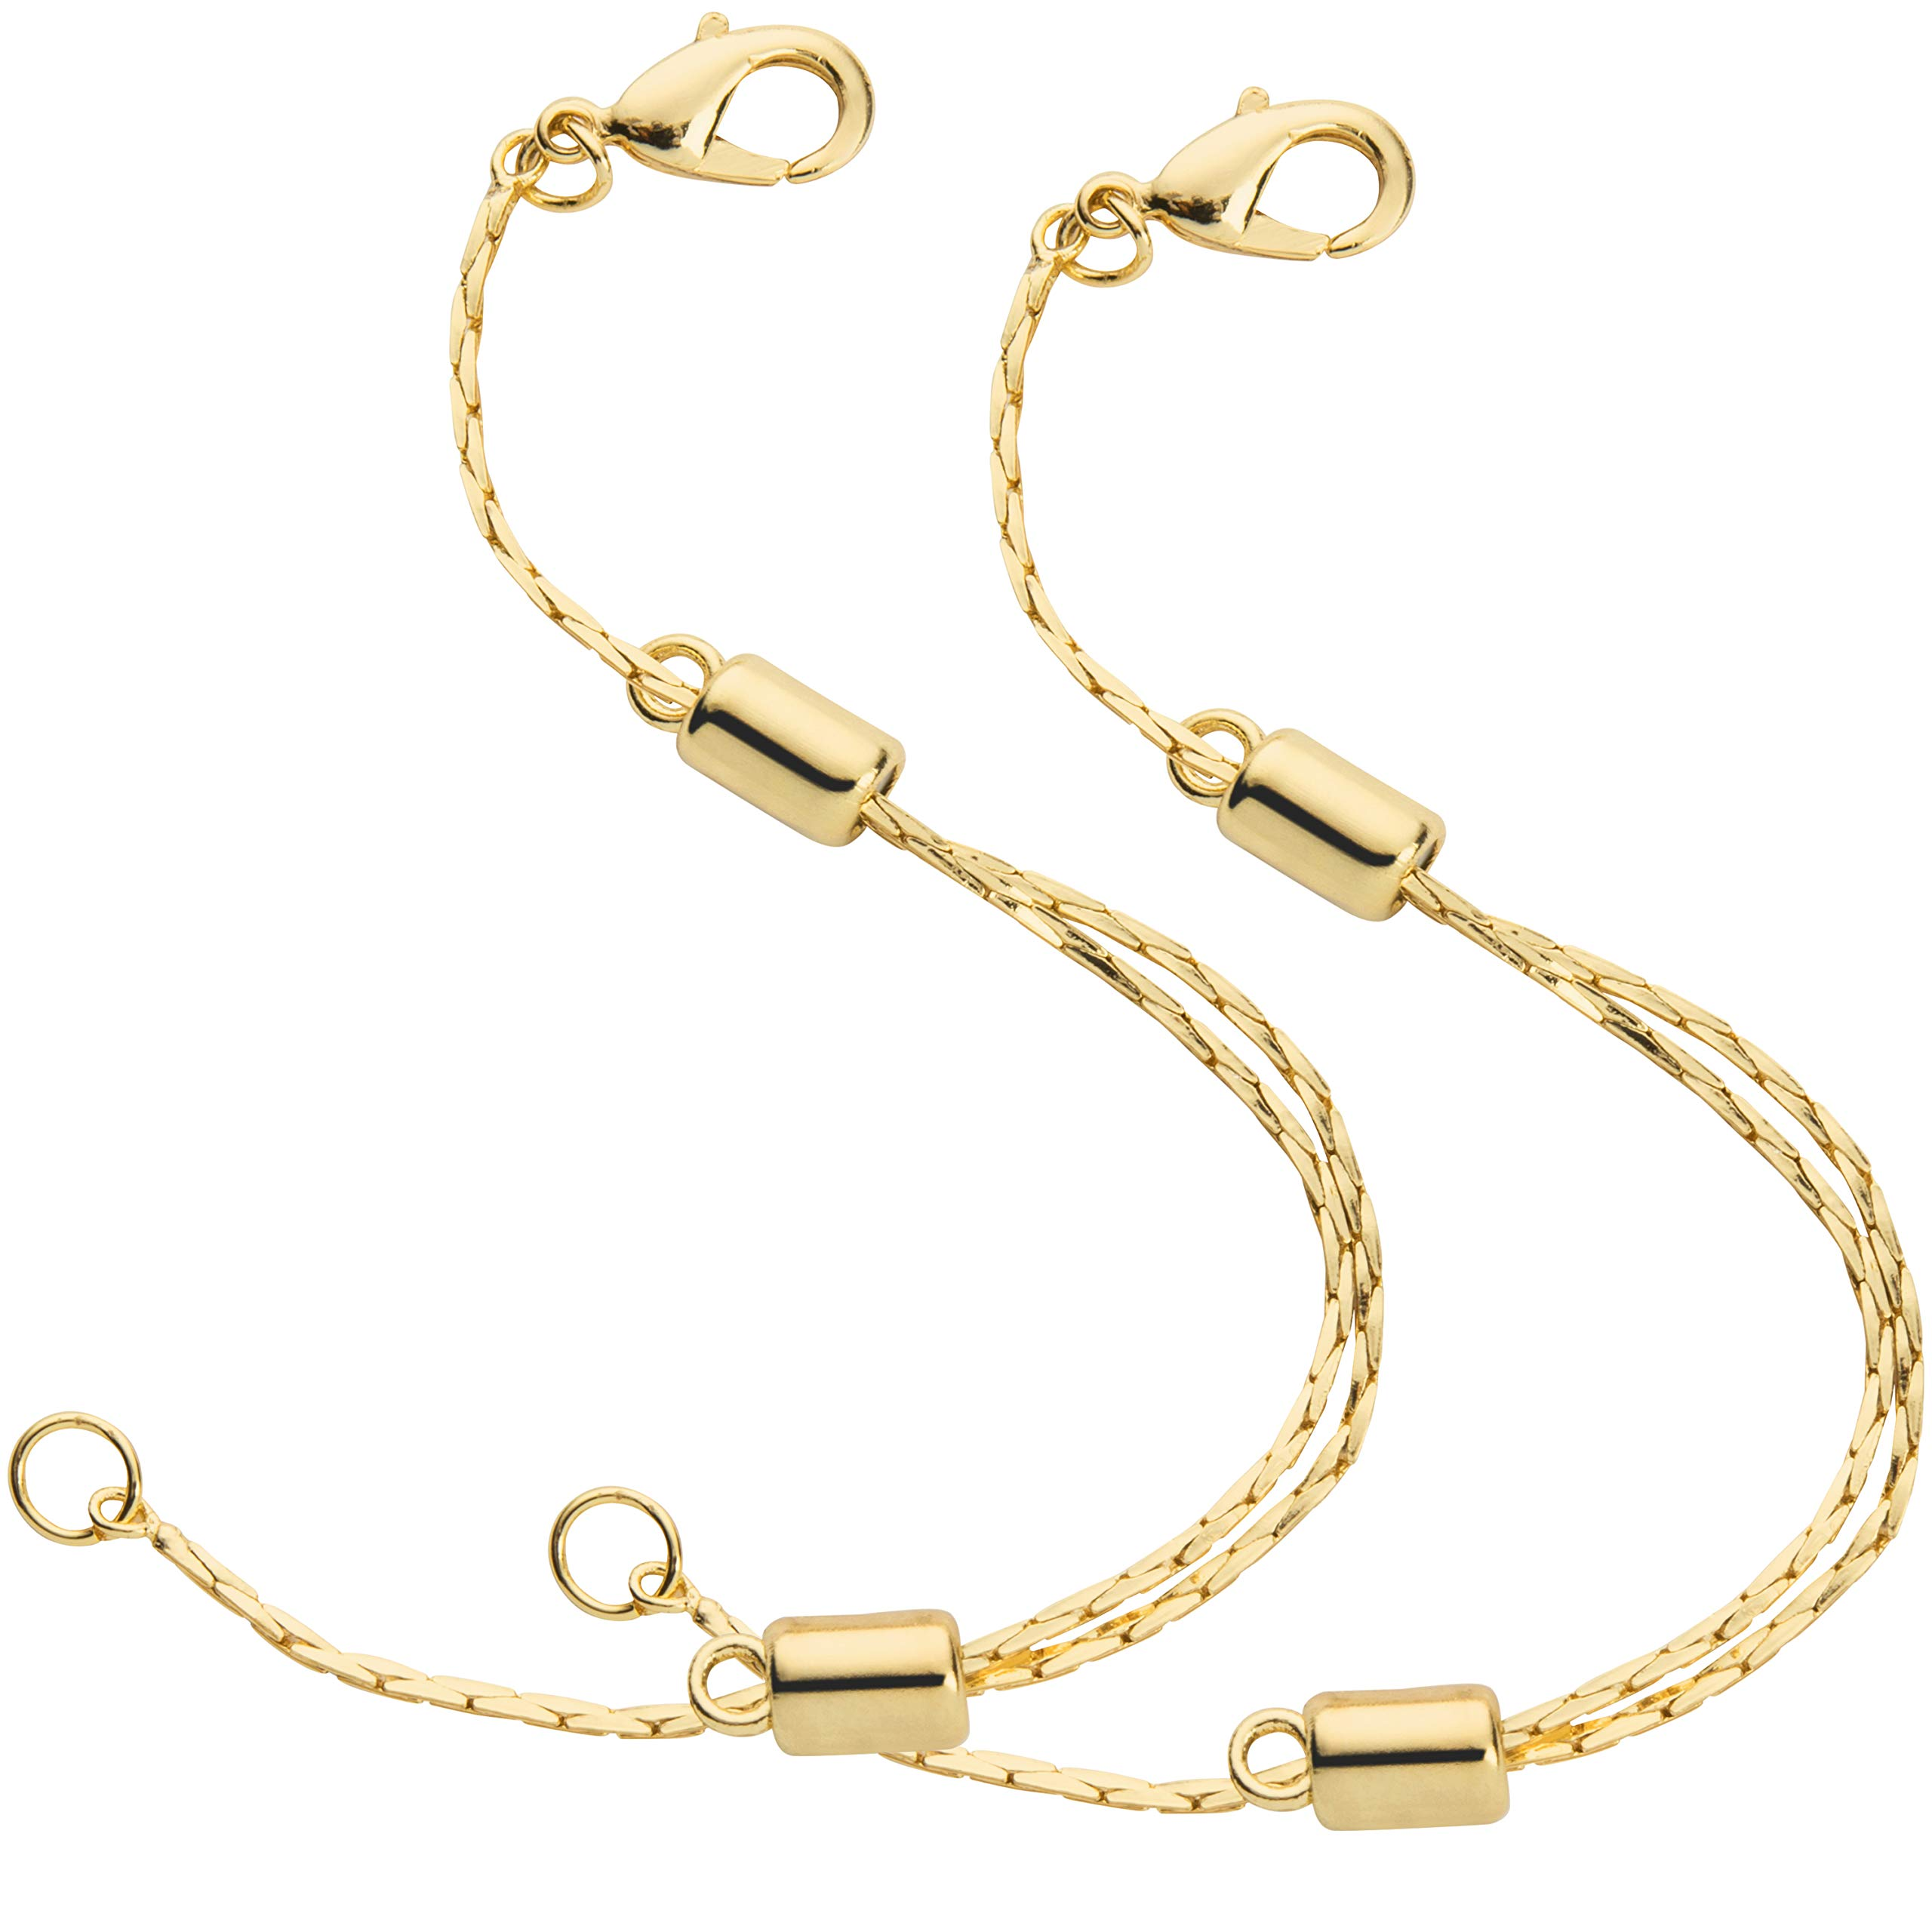 14K Yellow Gold Filled Adjustable Necklace Chain Extender with Lobster Clasp, 2 Extenders by Everyday Elegance Jewelry